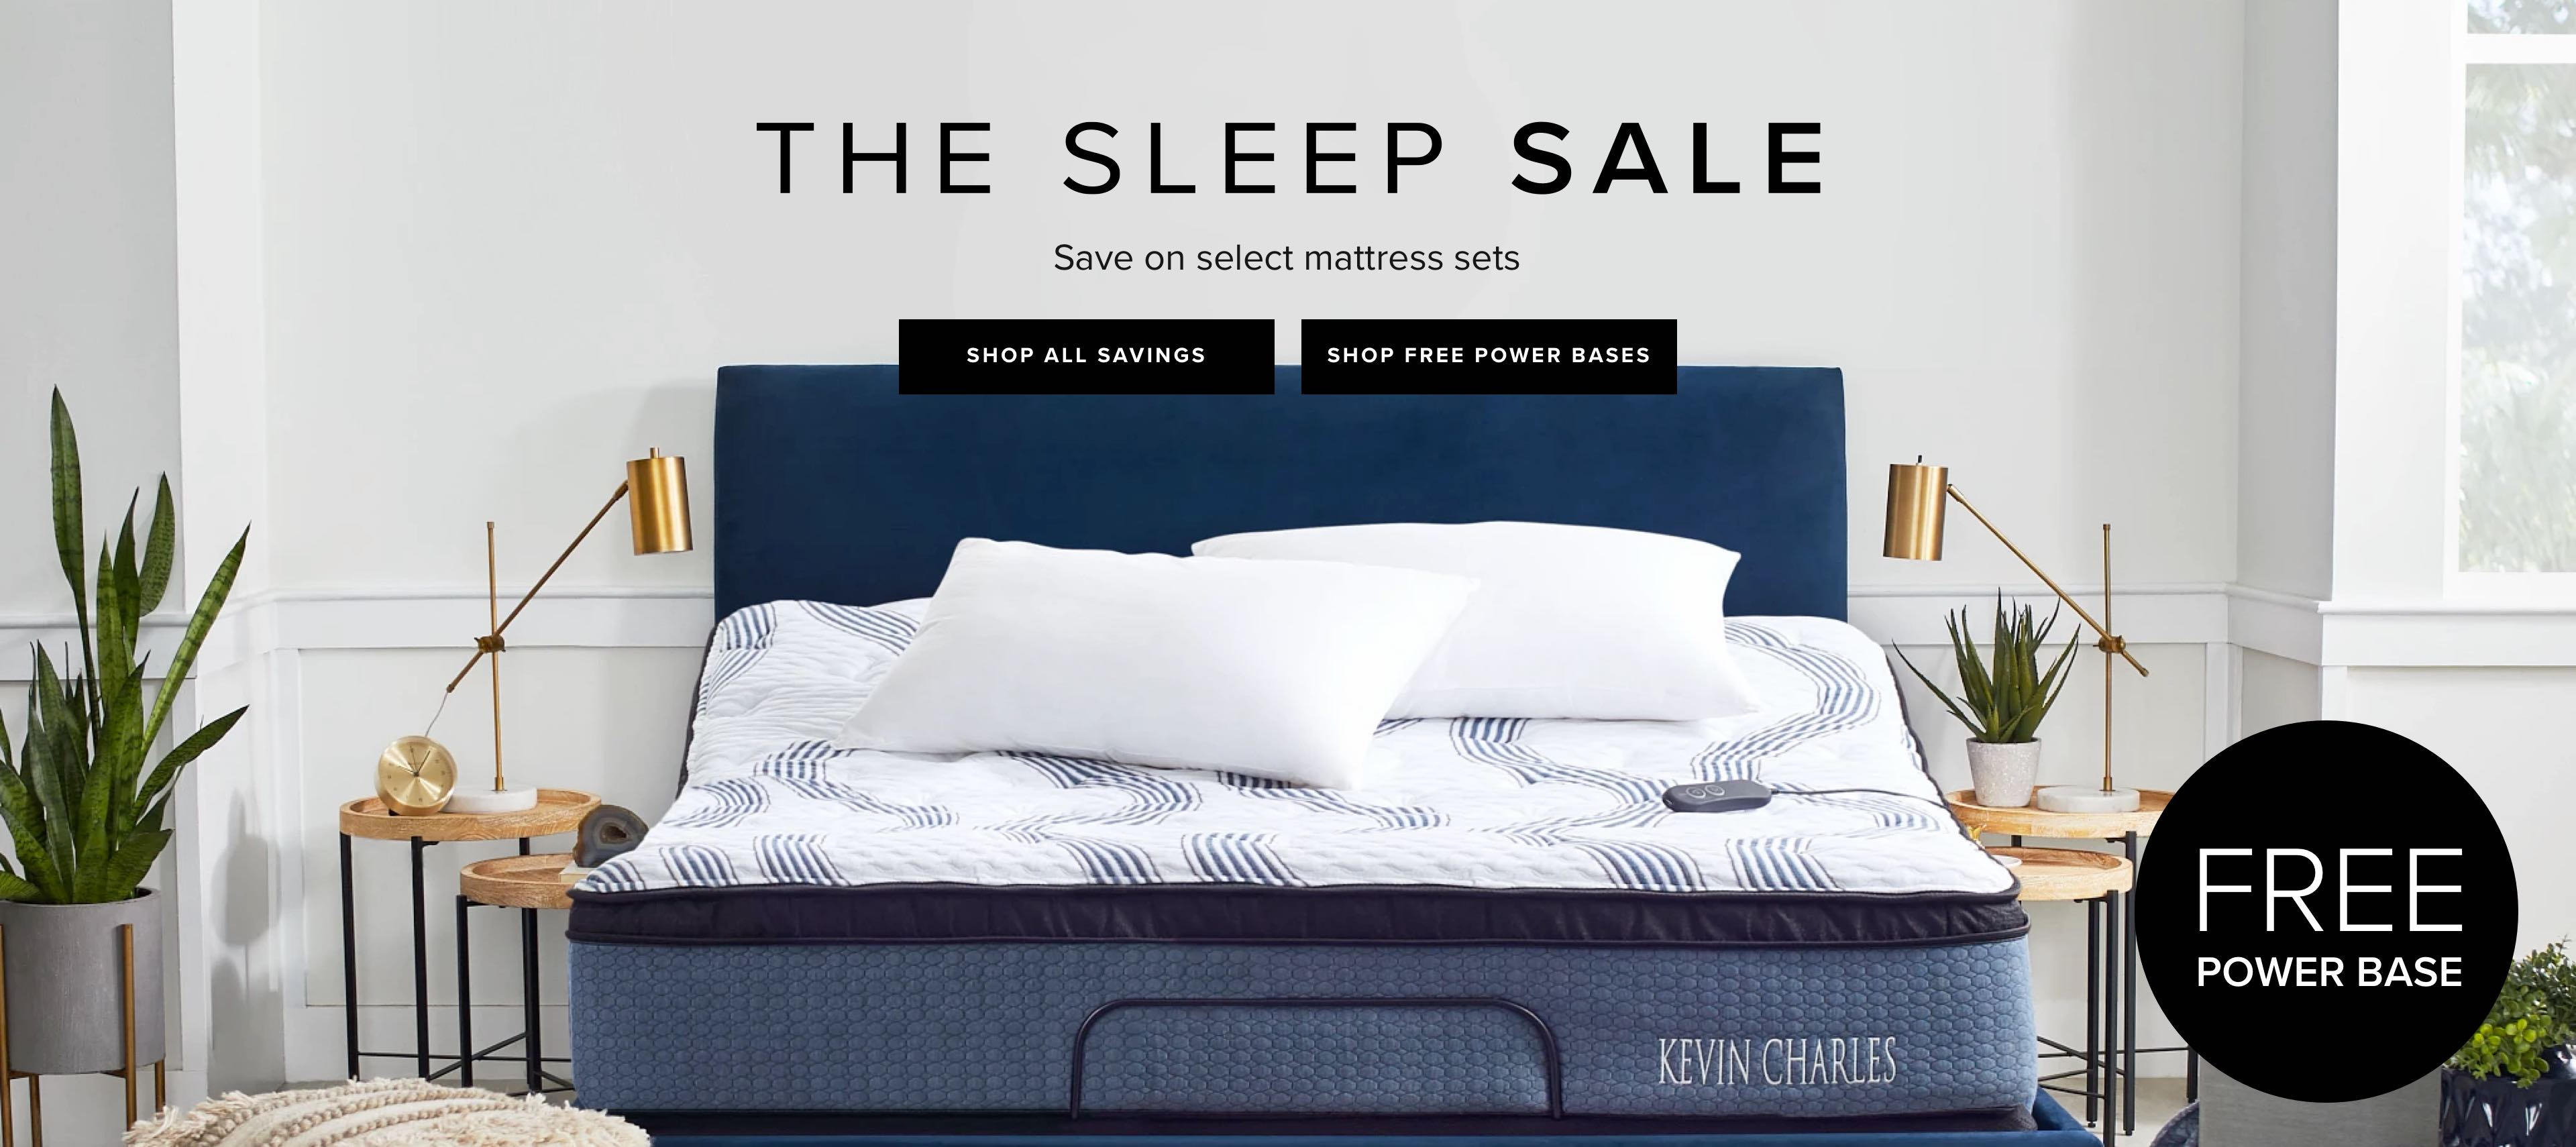 The Sleep Sale. Save on Select Mattress Sets. Click to shop all savings. Click to shop Free Power Base.